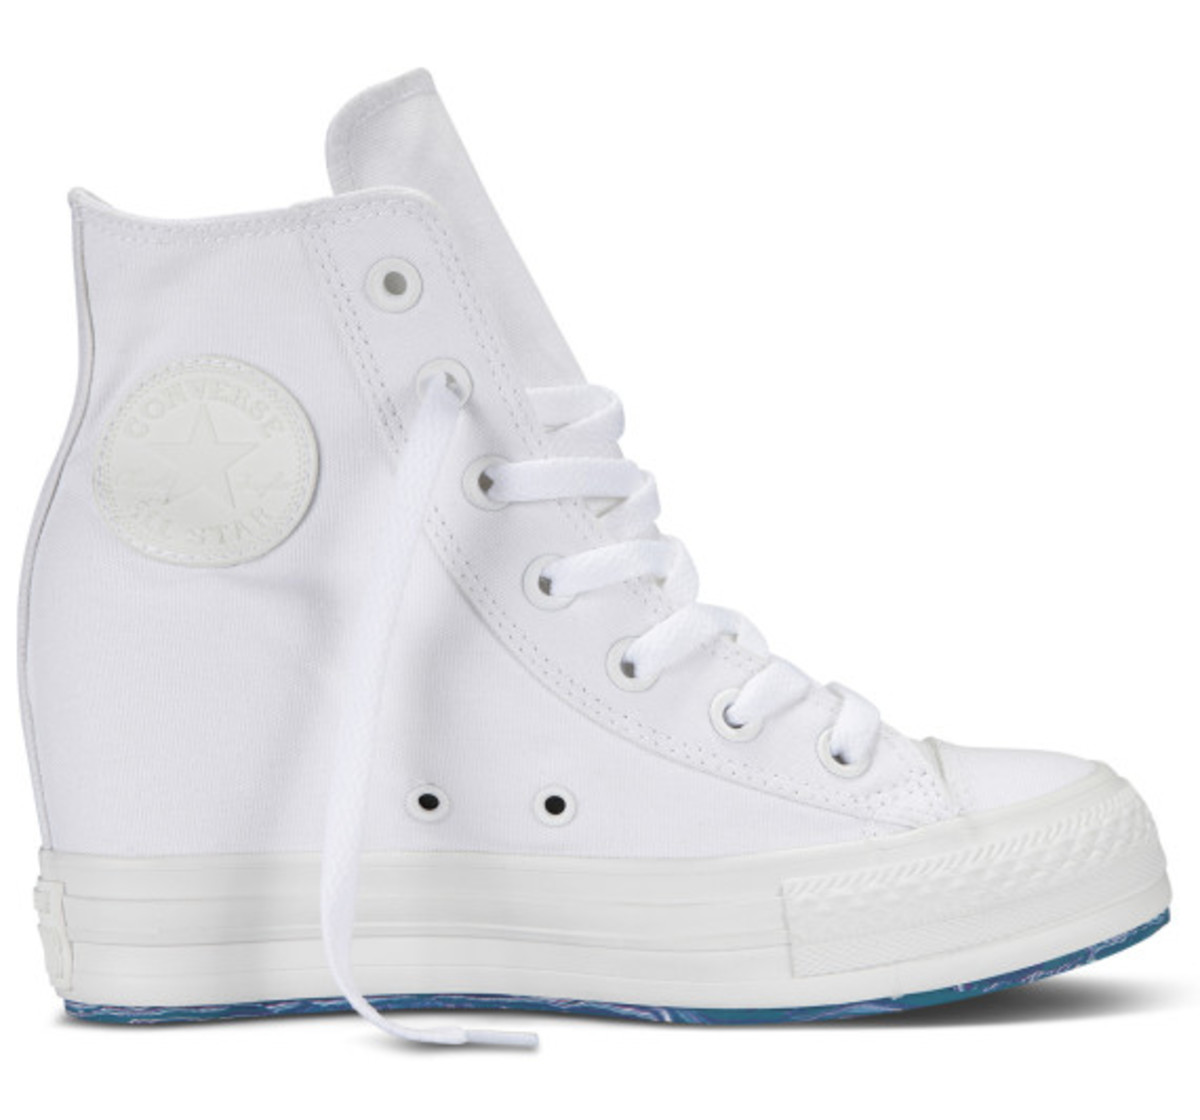 converse-chuck-taylor-all-star-spring-2014-collection-07